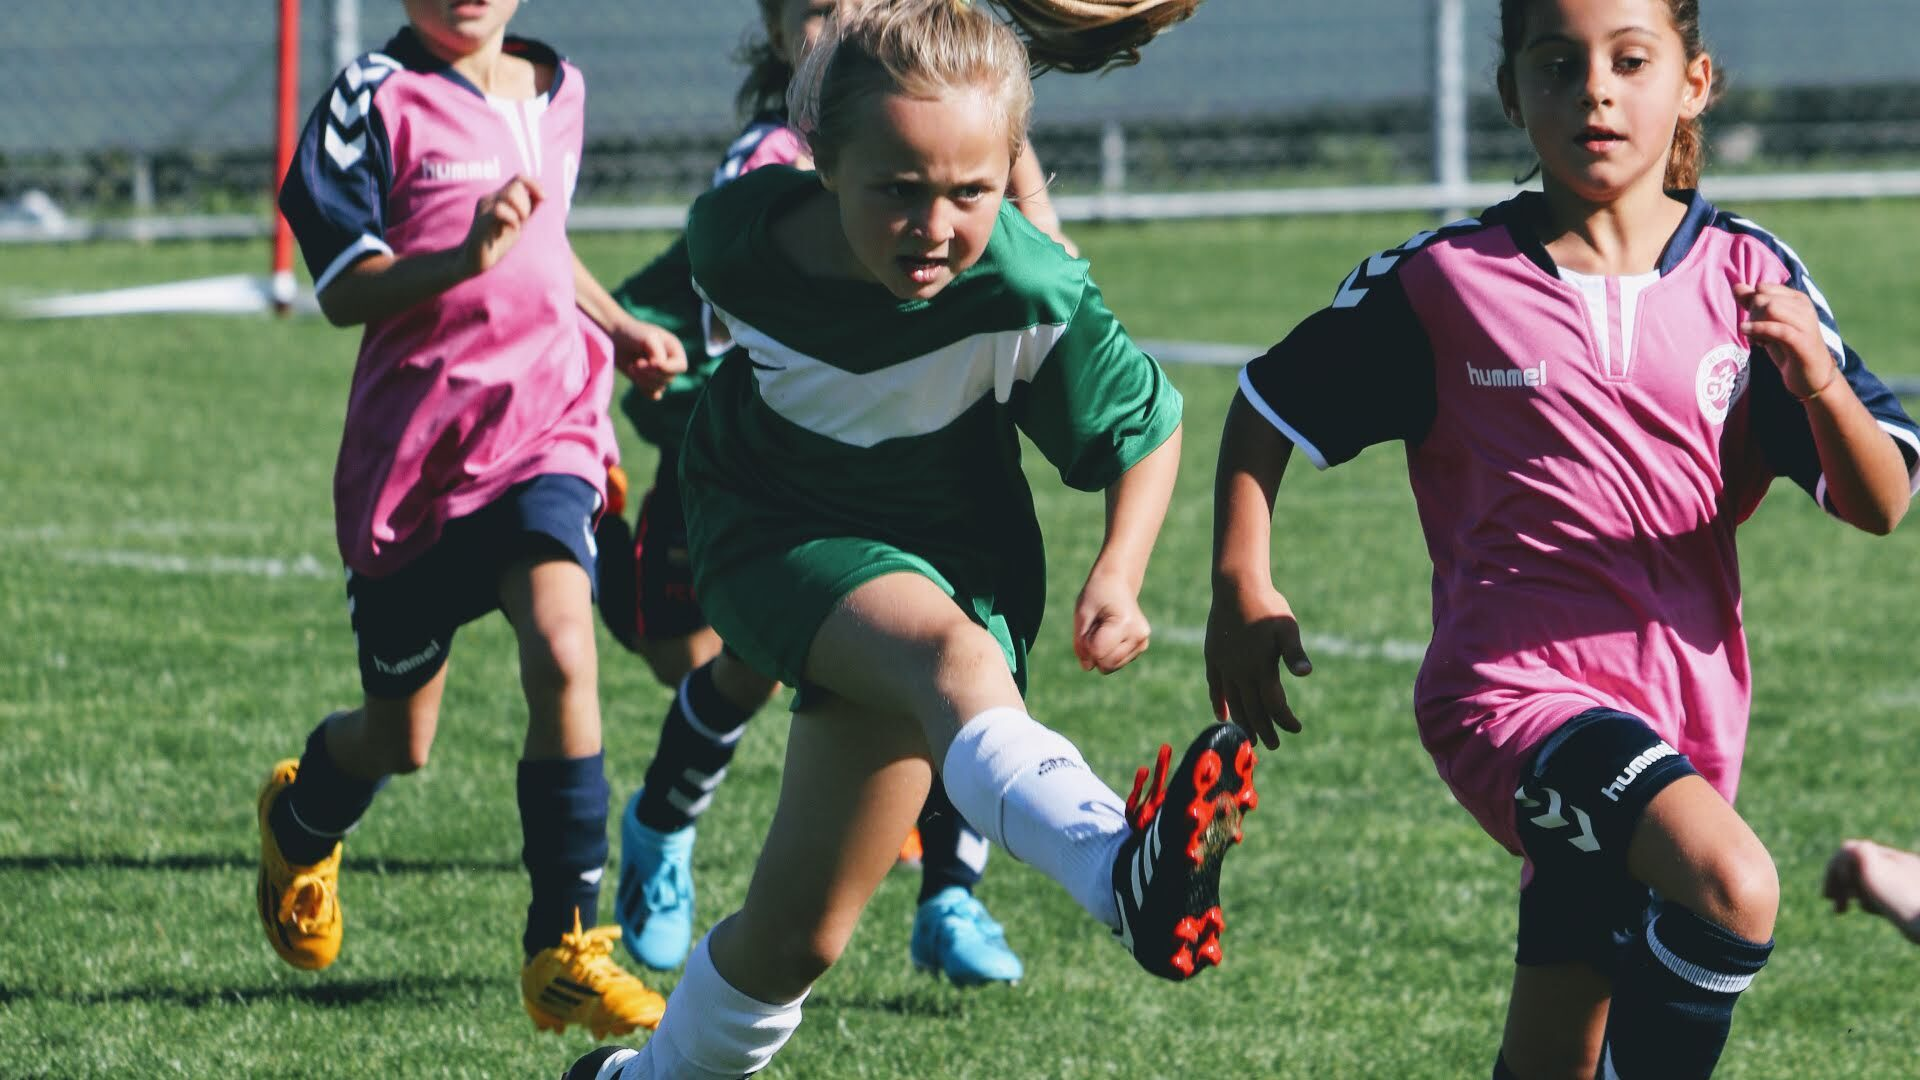 Girls Soccer School